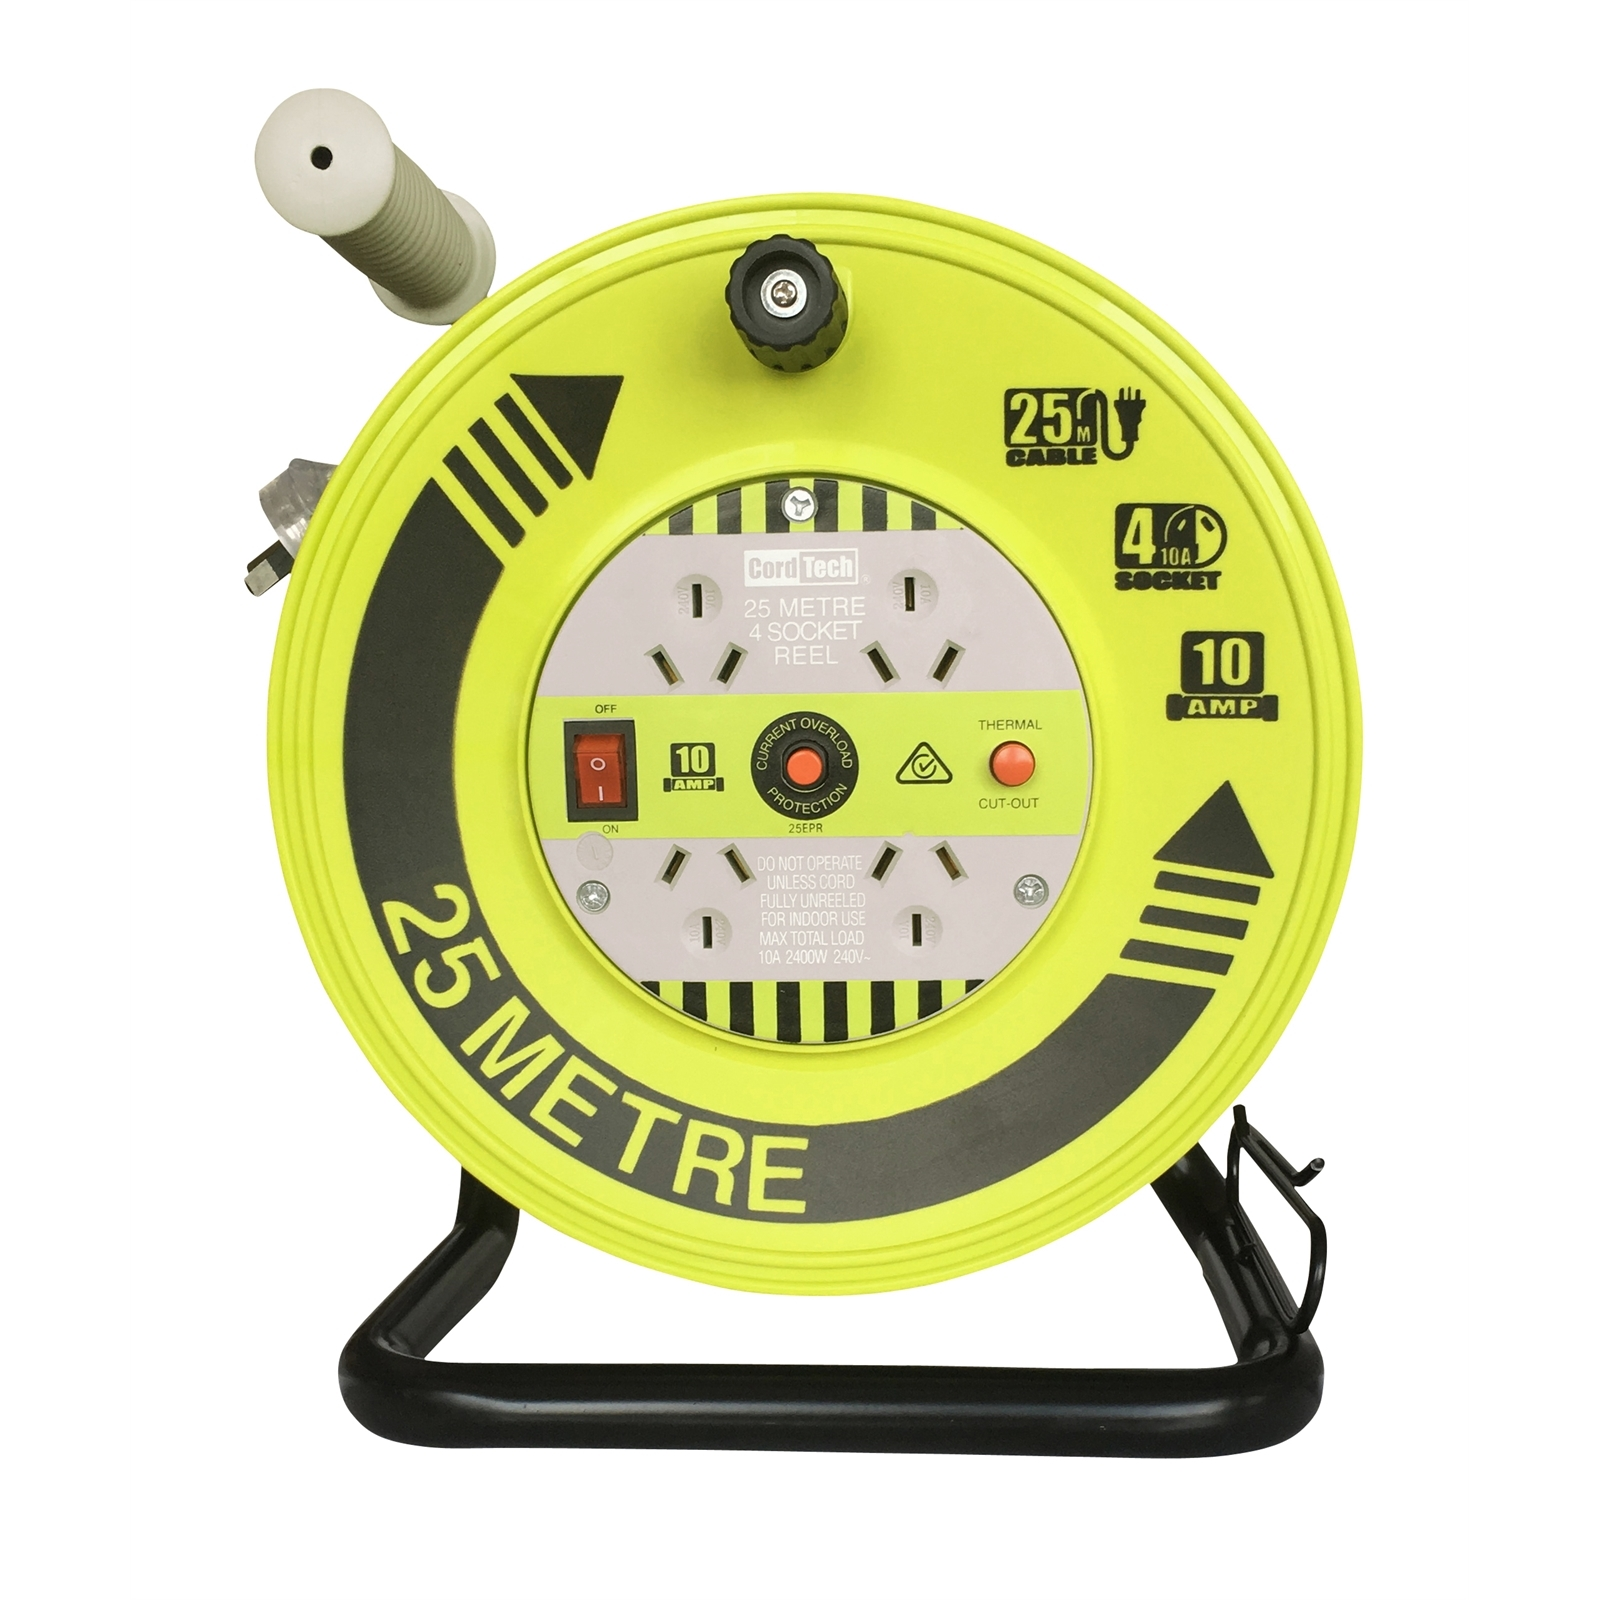 CordTech 25m Heavy Duty Cable Reel With 3 Outlets